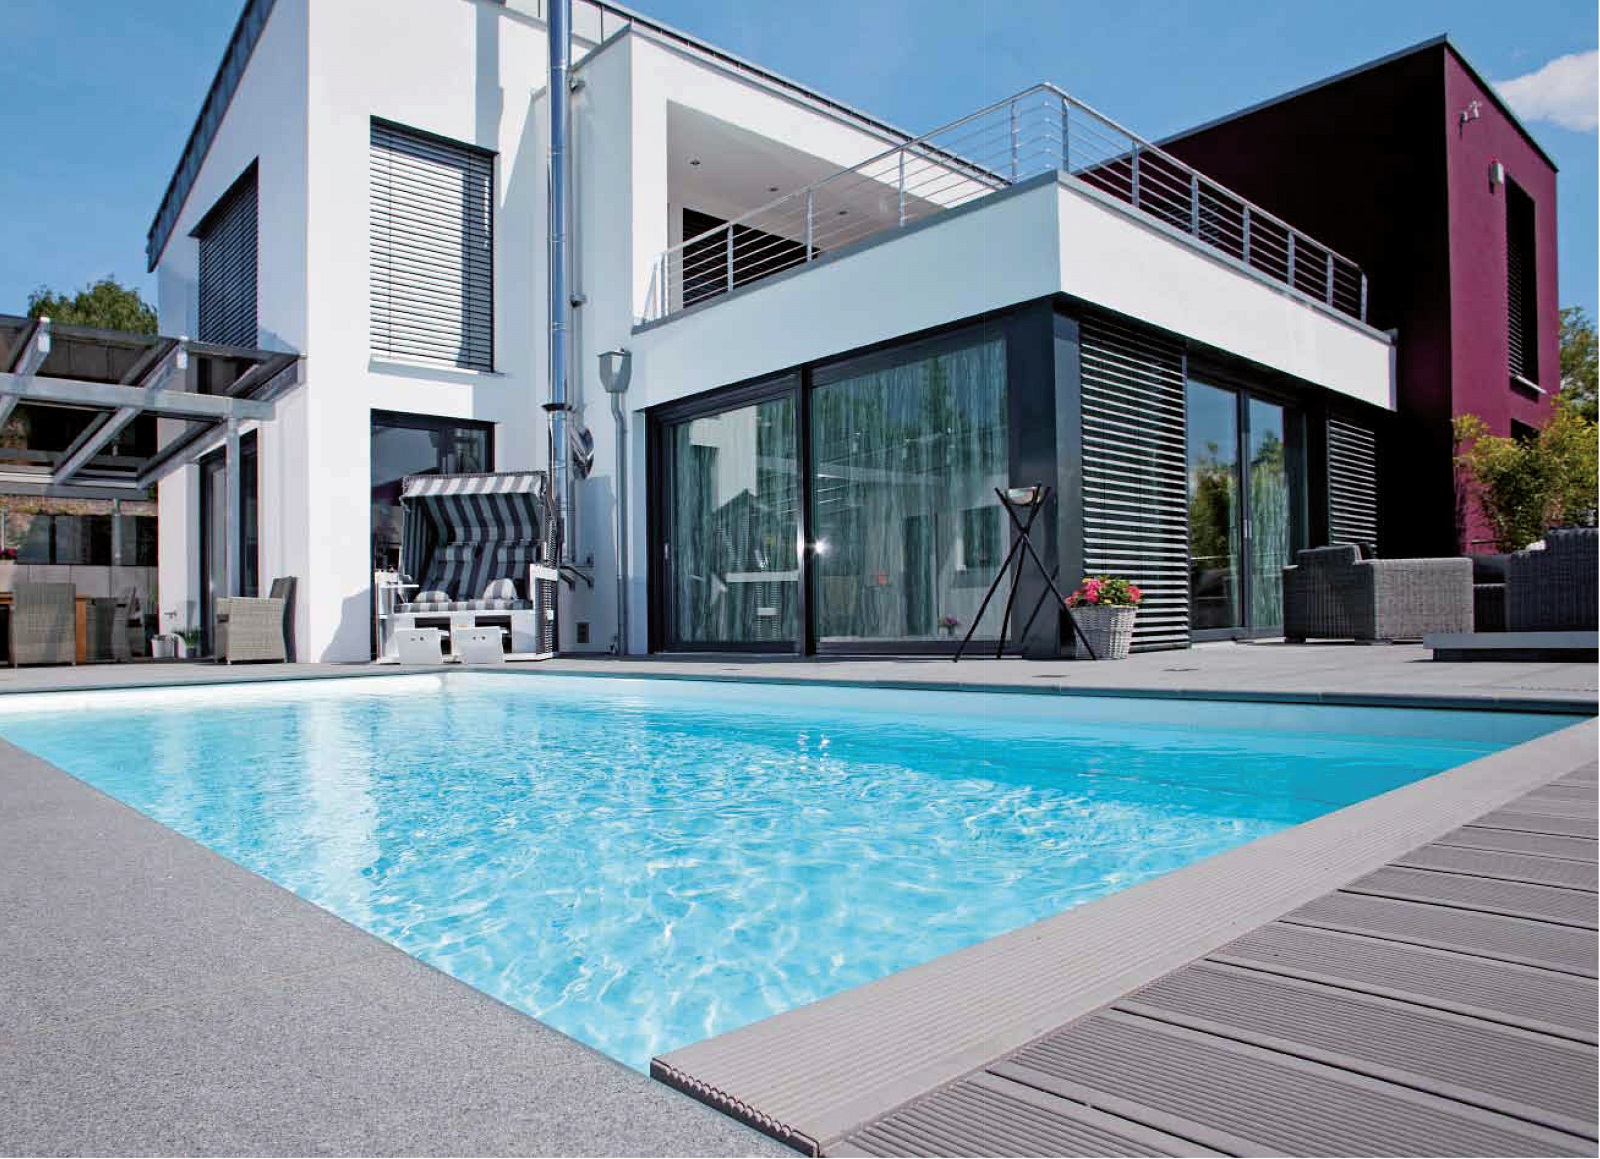 Haus am Pool